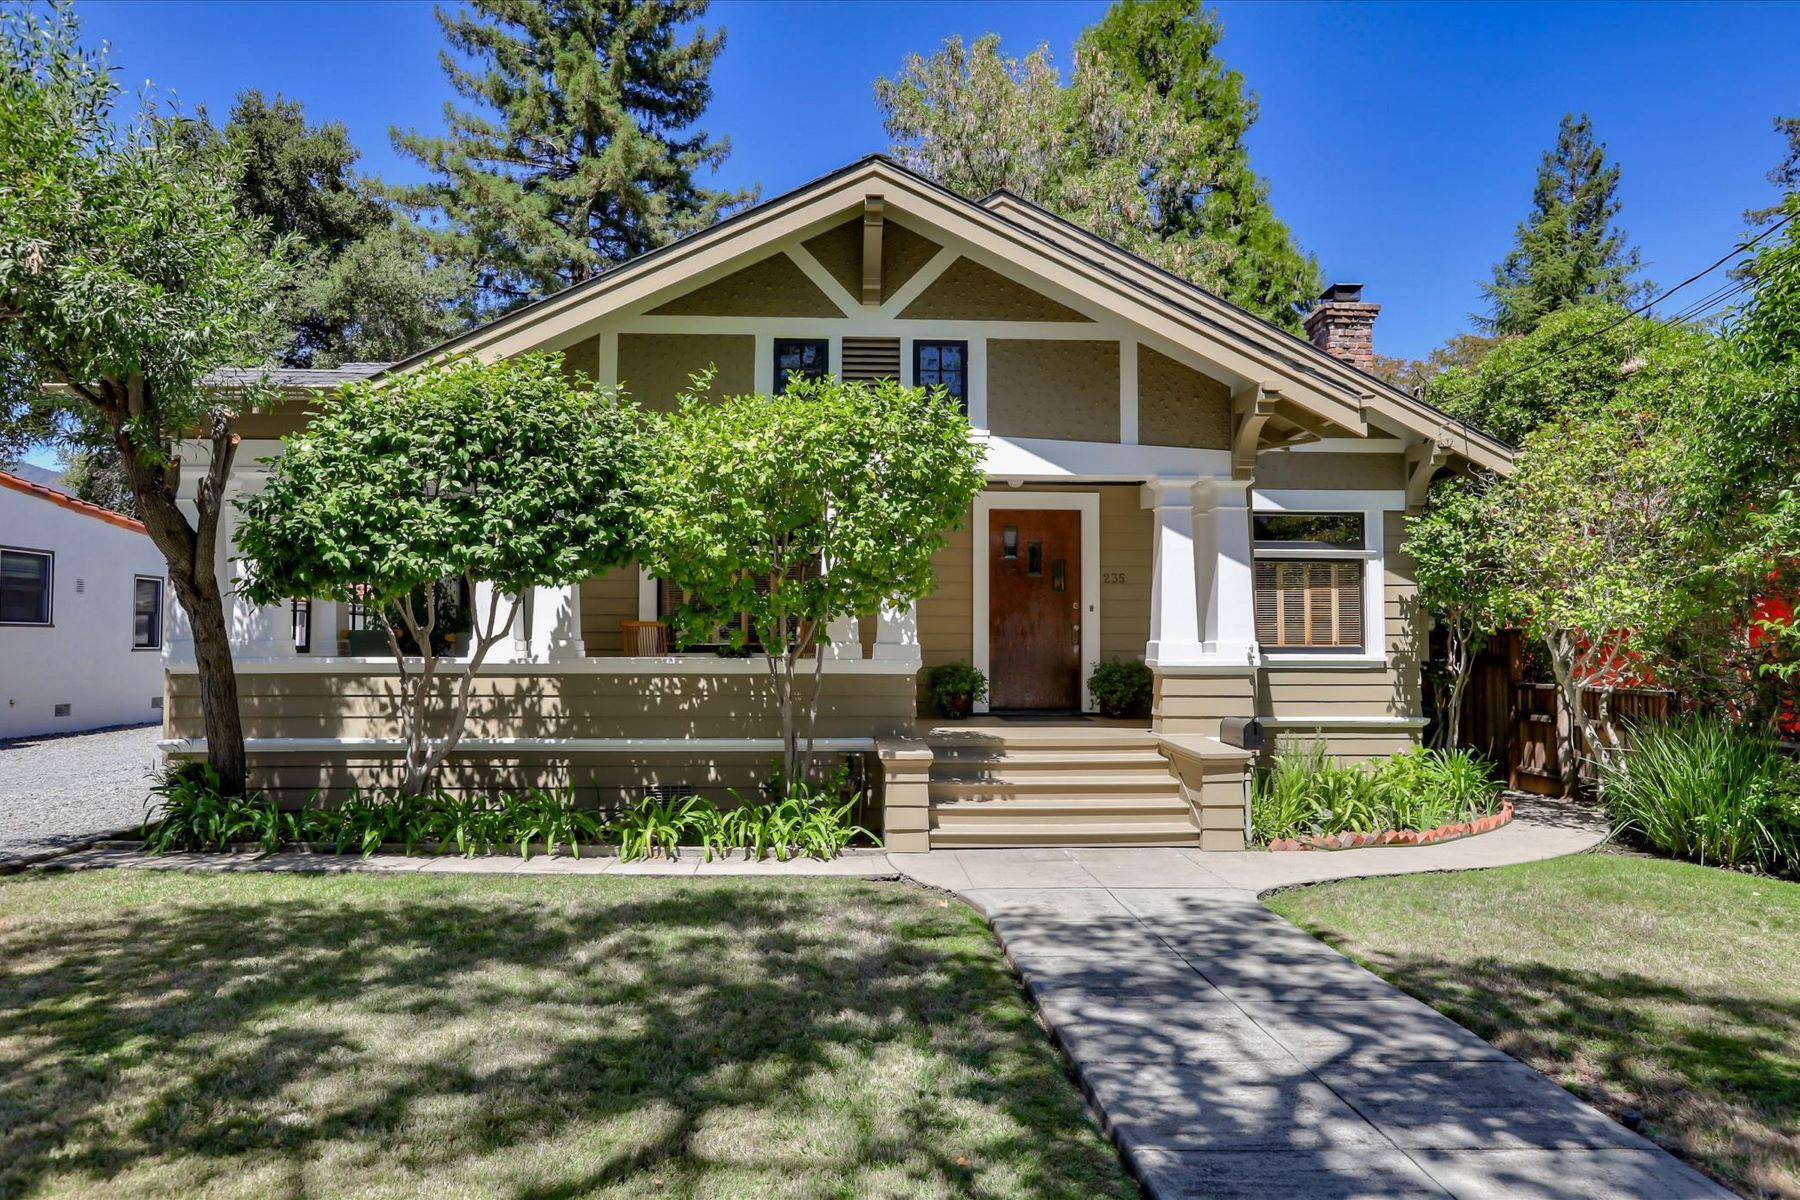 Single Family Homes for Active at Historic Beauty in downtown Los Gatos! 235 Los Gatos Boulevard Los Gatos, California 95030 United States